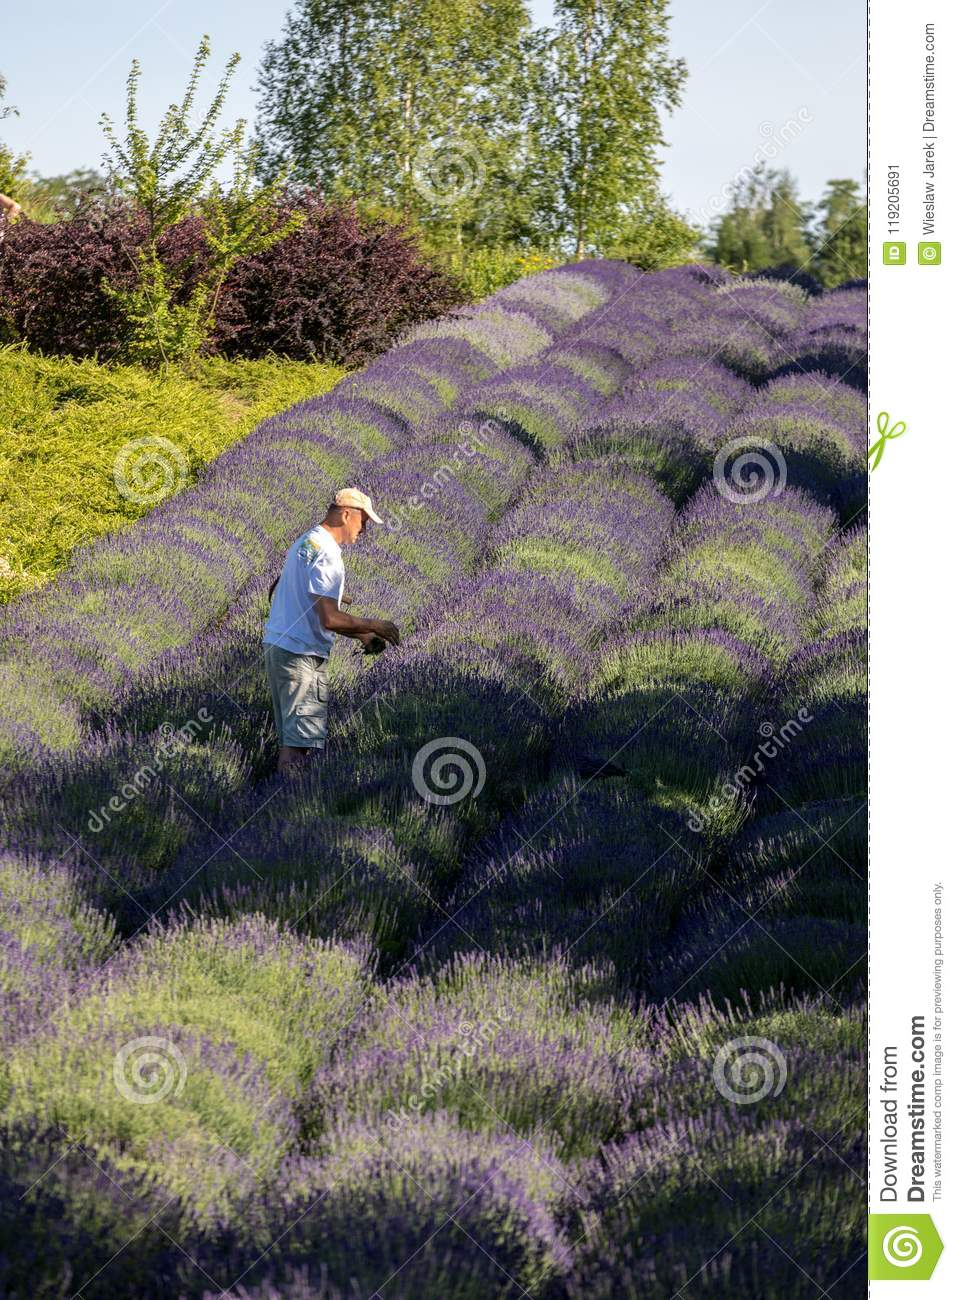 A `Garden full of lavender` arranged by Barbara and Andrzej Olender in Ostrów 40 km from Krakow. The smell and color of lavender